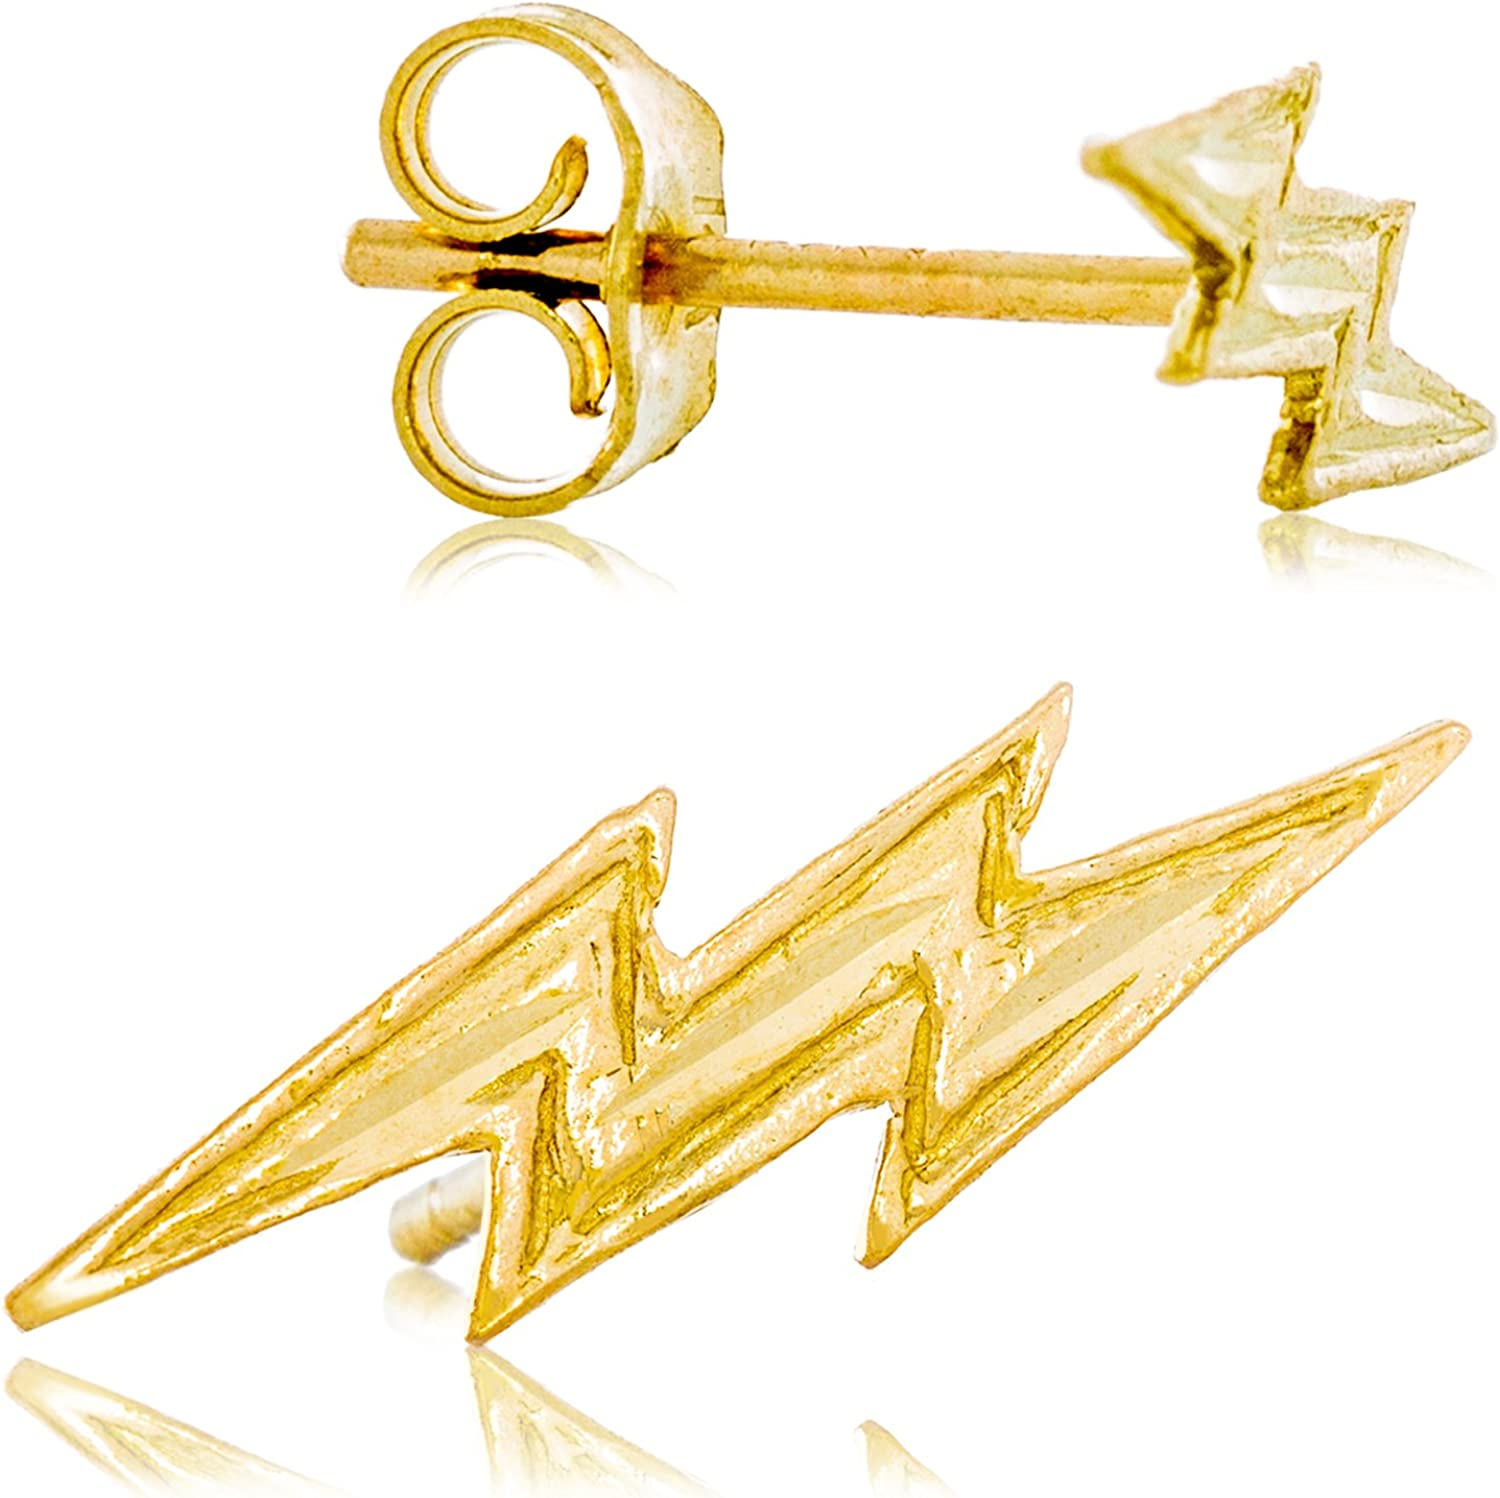 Solid 14K Yellow Gold Lightning Bolt Earrings   Fun, Edgy Design for Men and Women   13.4mm wide x 4.3 tall   0.7g